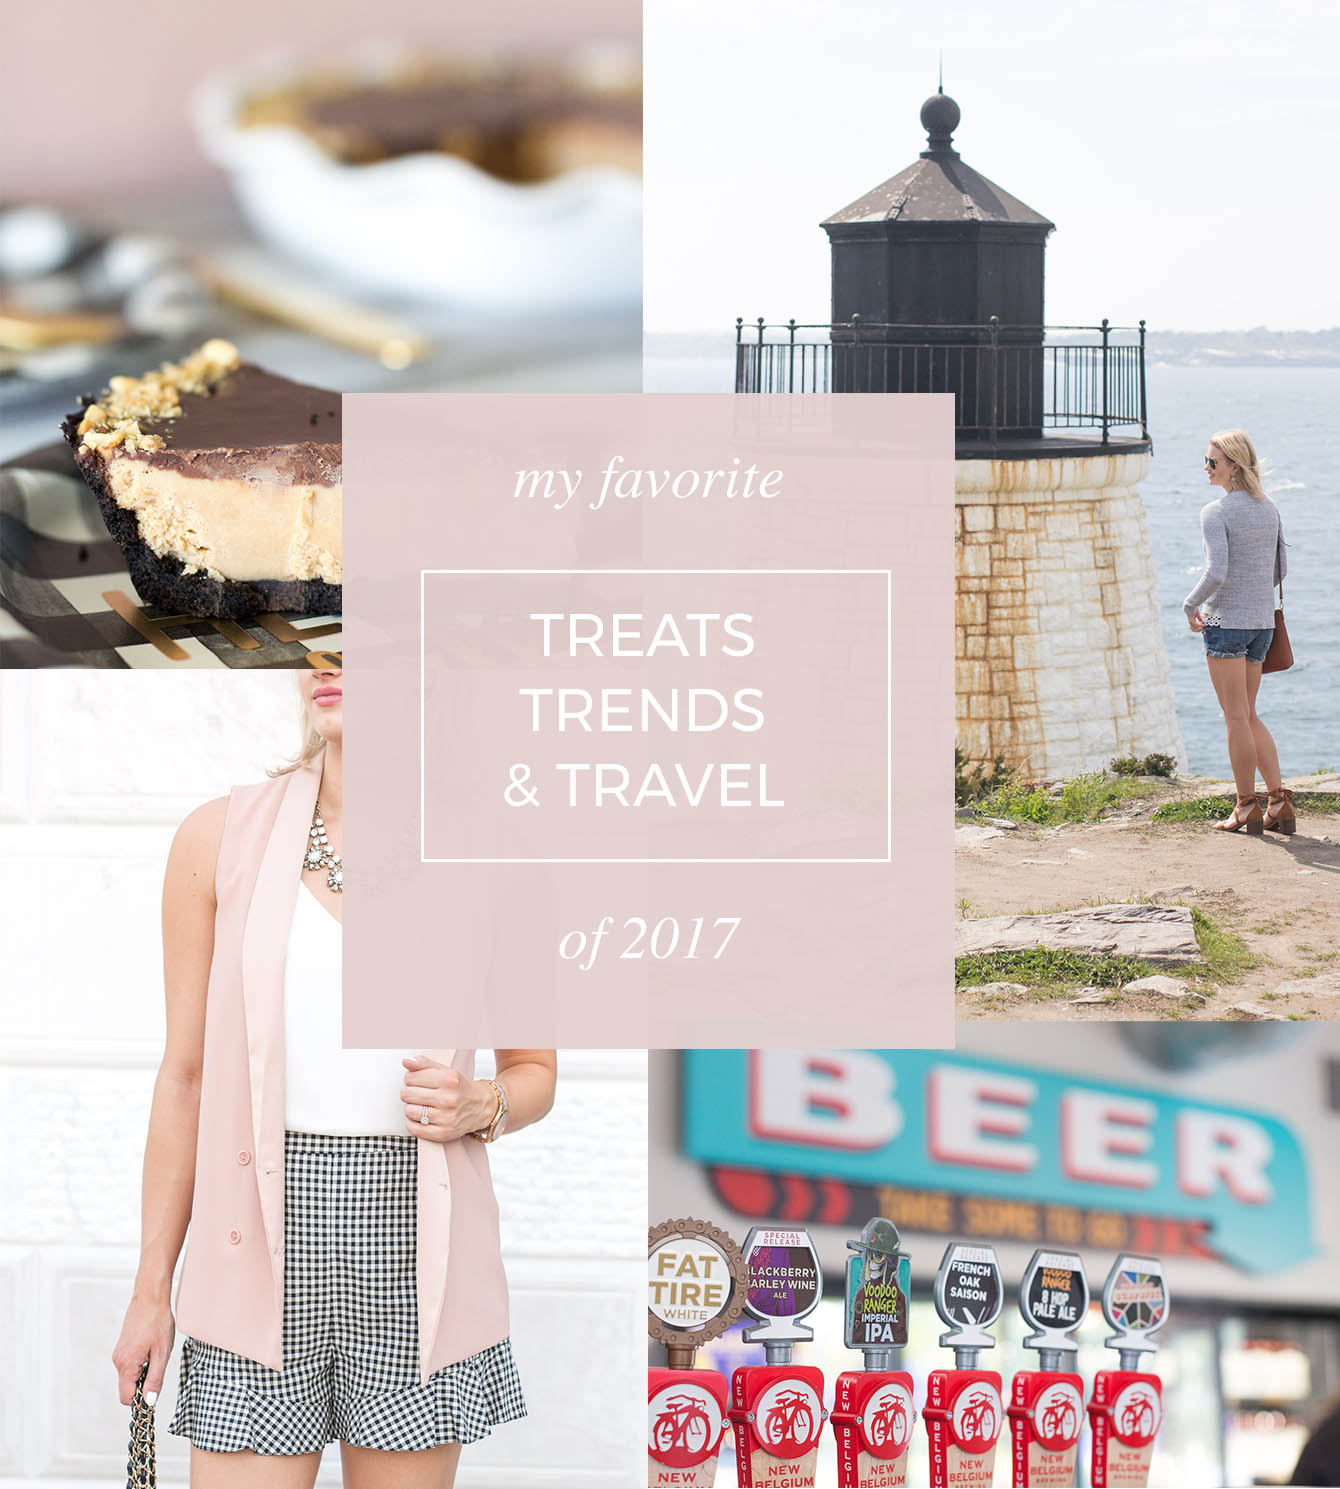 My Favorites: Are What Type Of Trend?